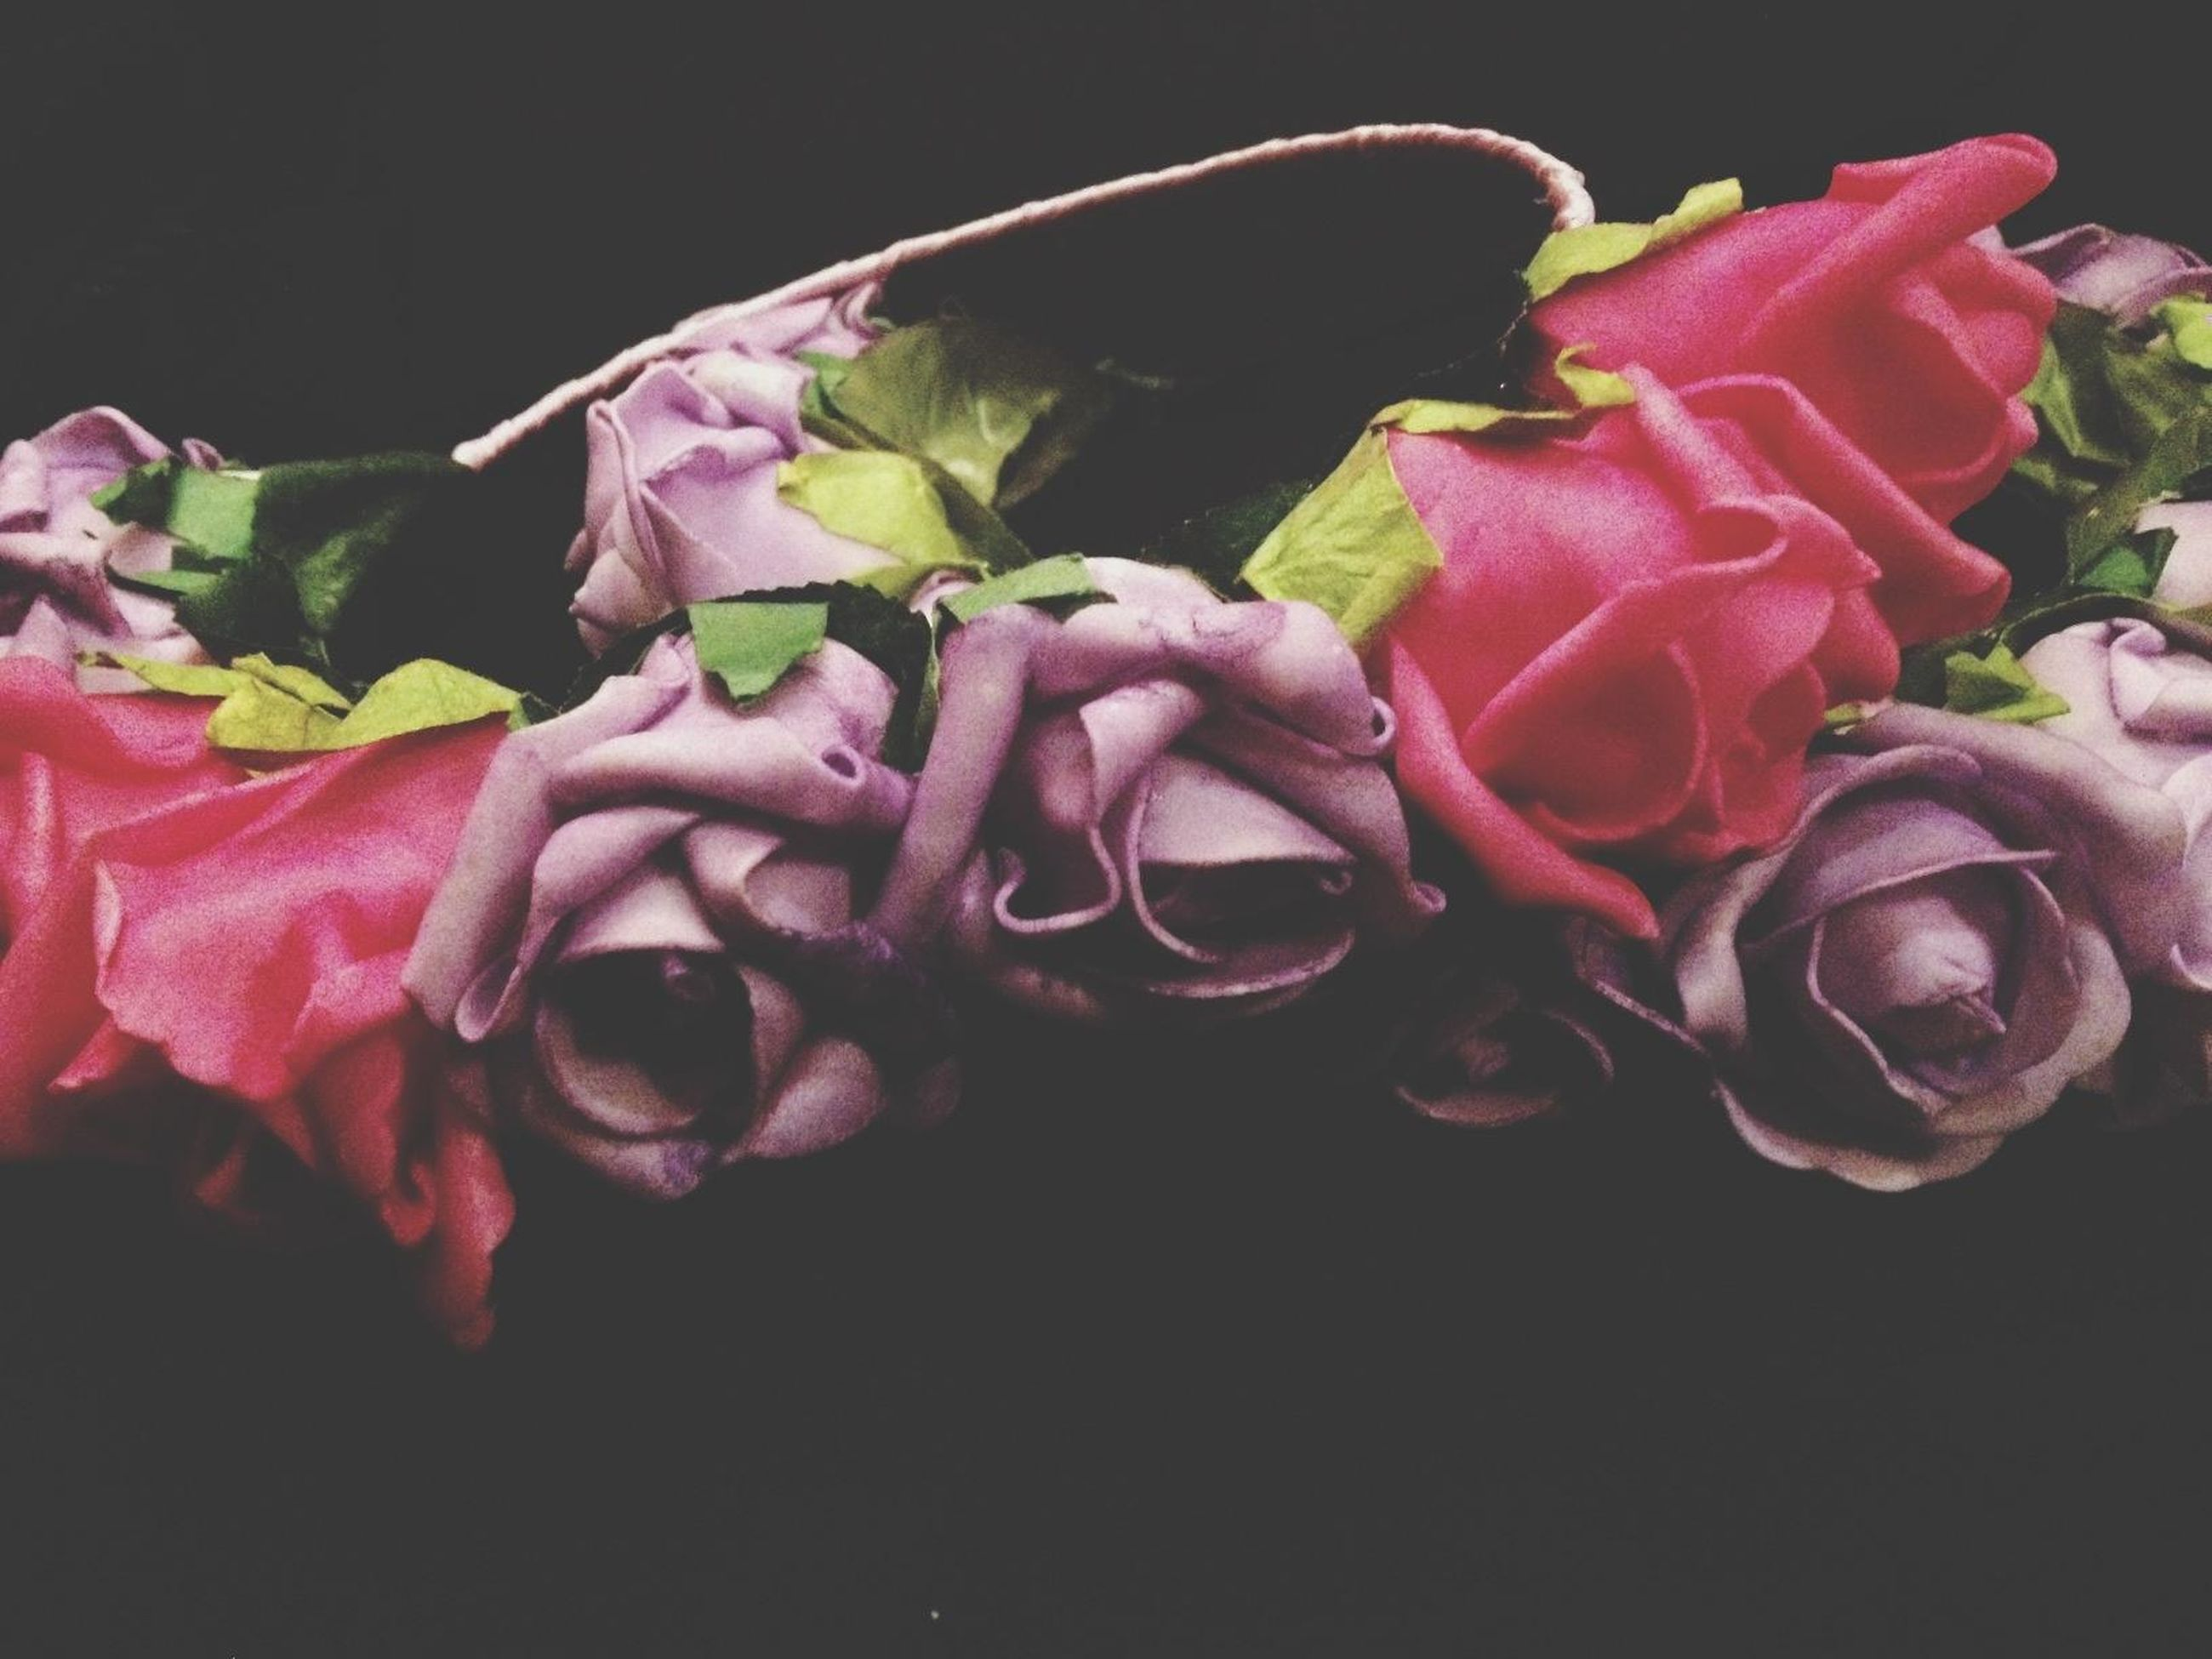 flower, petal, freshness, fragility, pink color, close-up, studio shot, flower head, beauty in nature, black background, nature, rose - flower, plant, growth, water, no people, night, drop, purple, pink